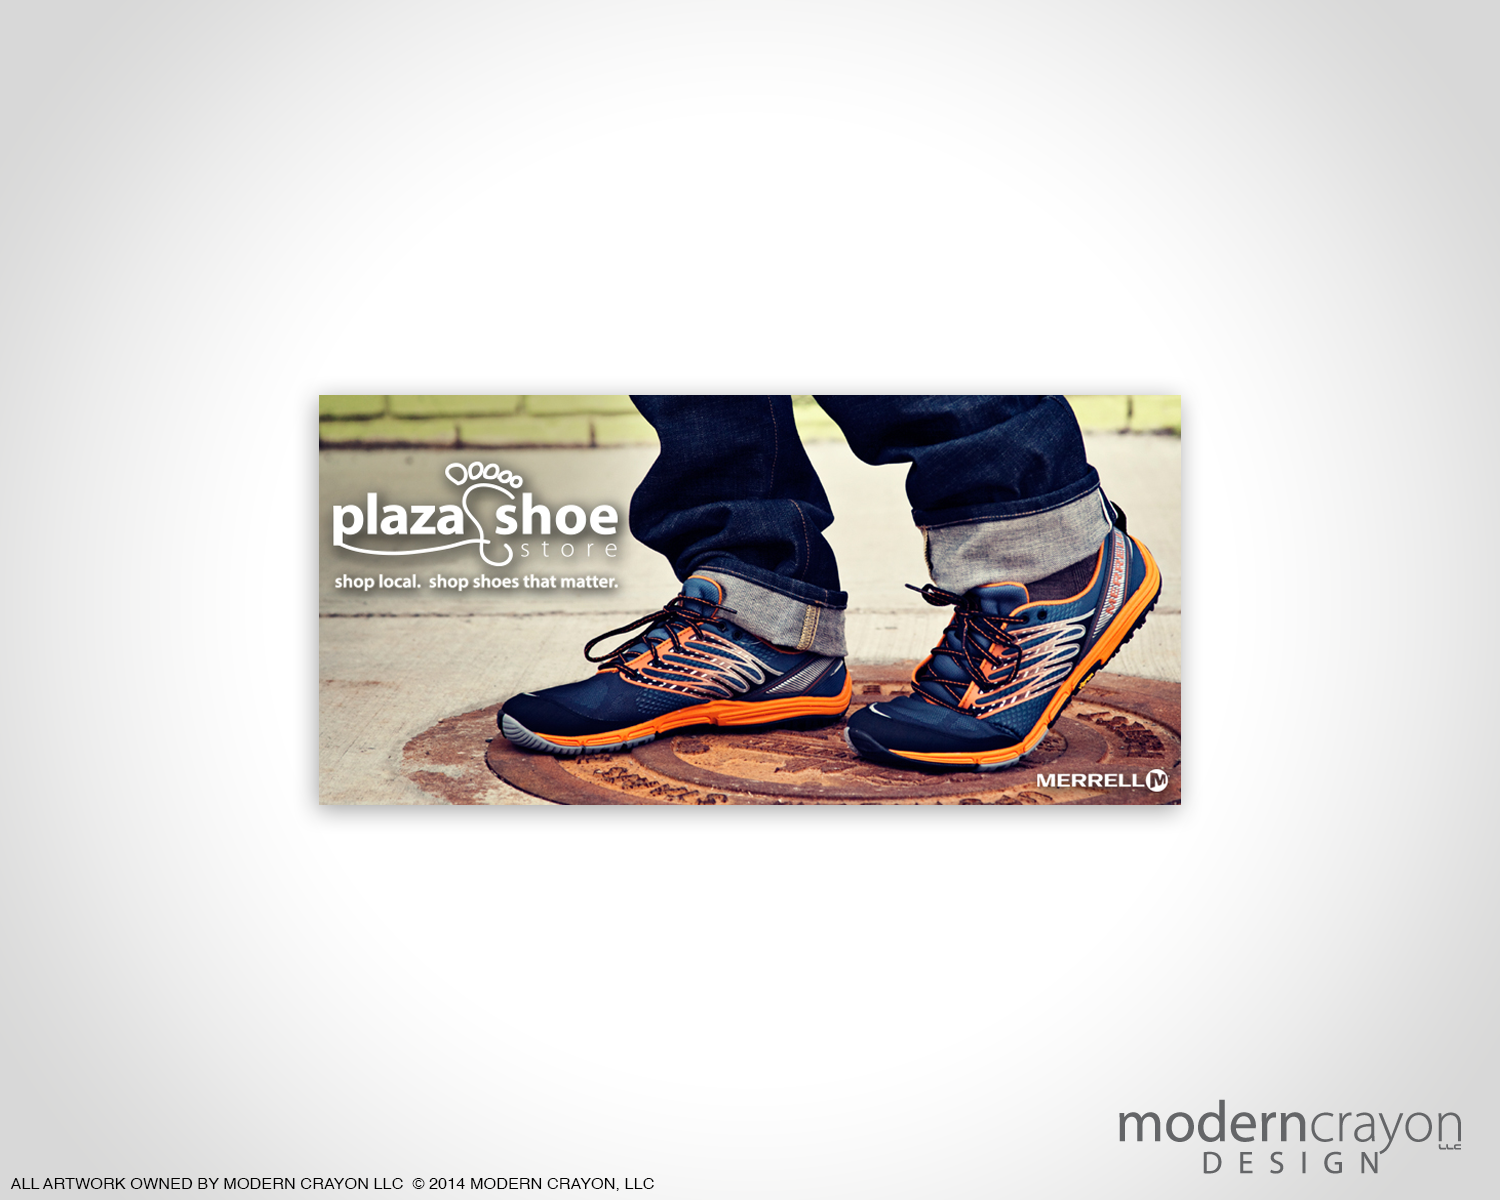 Plaza shoe store merrell digital billboard for A valeria boss salon